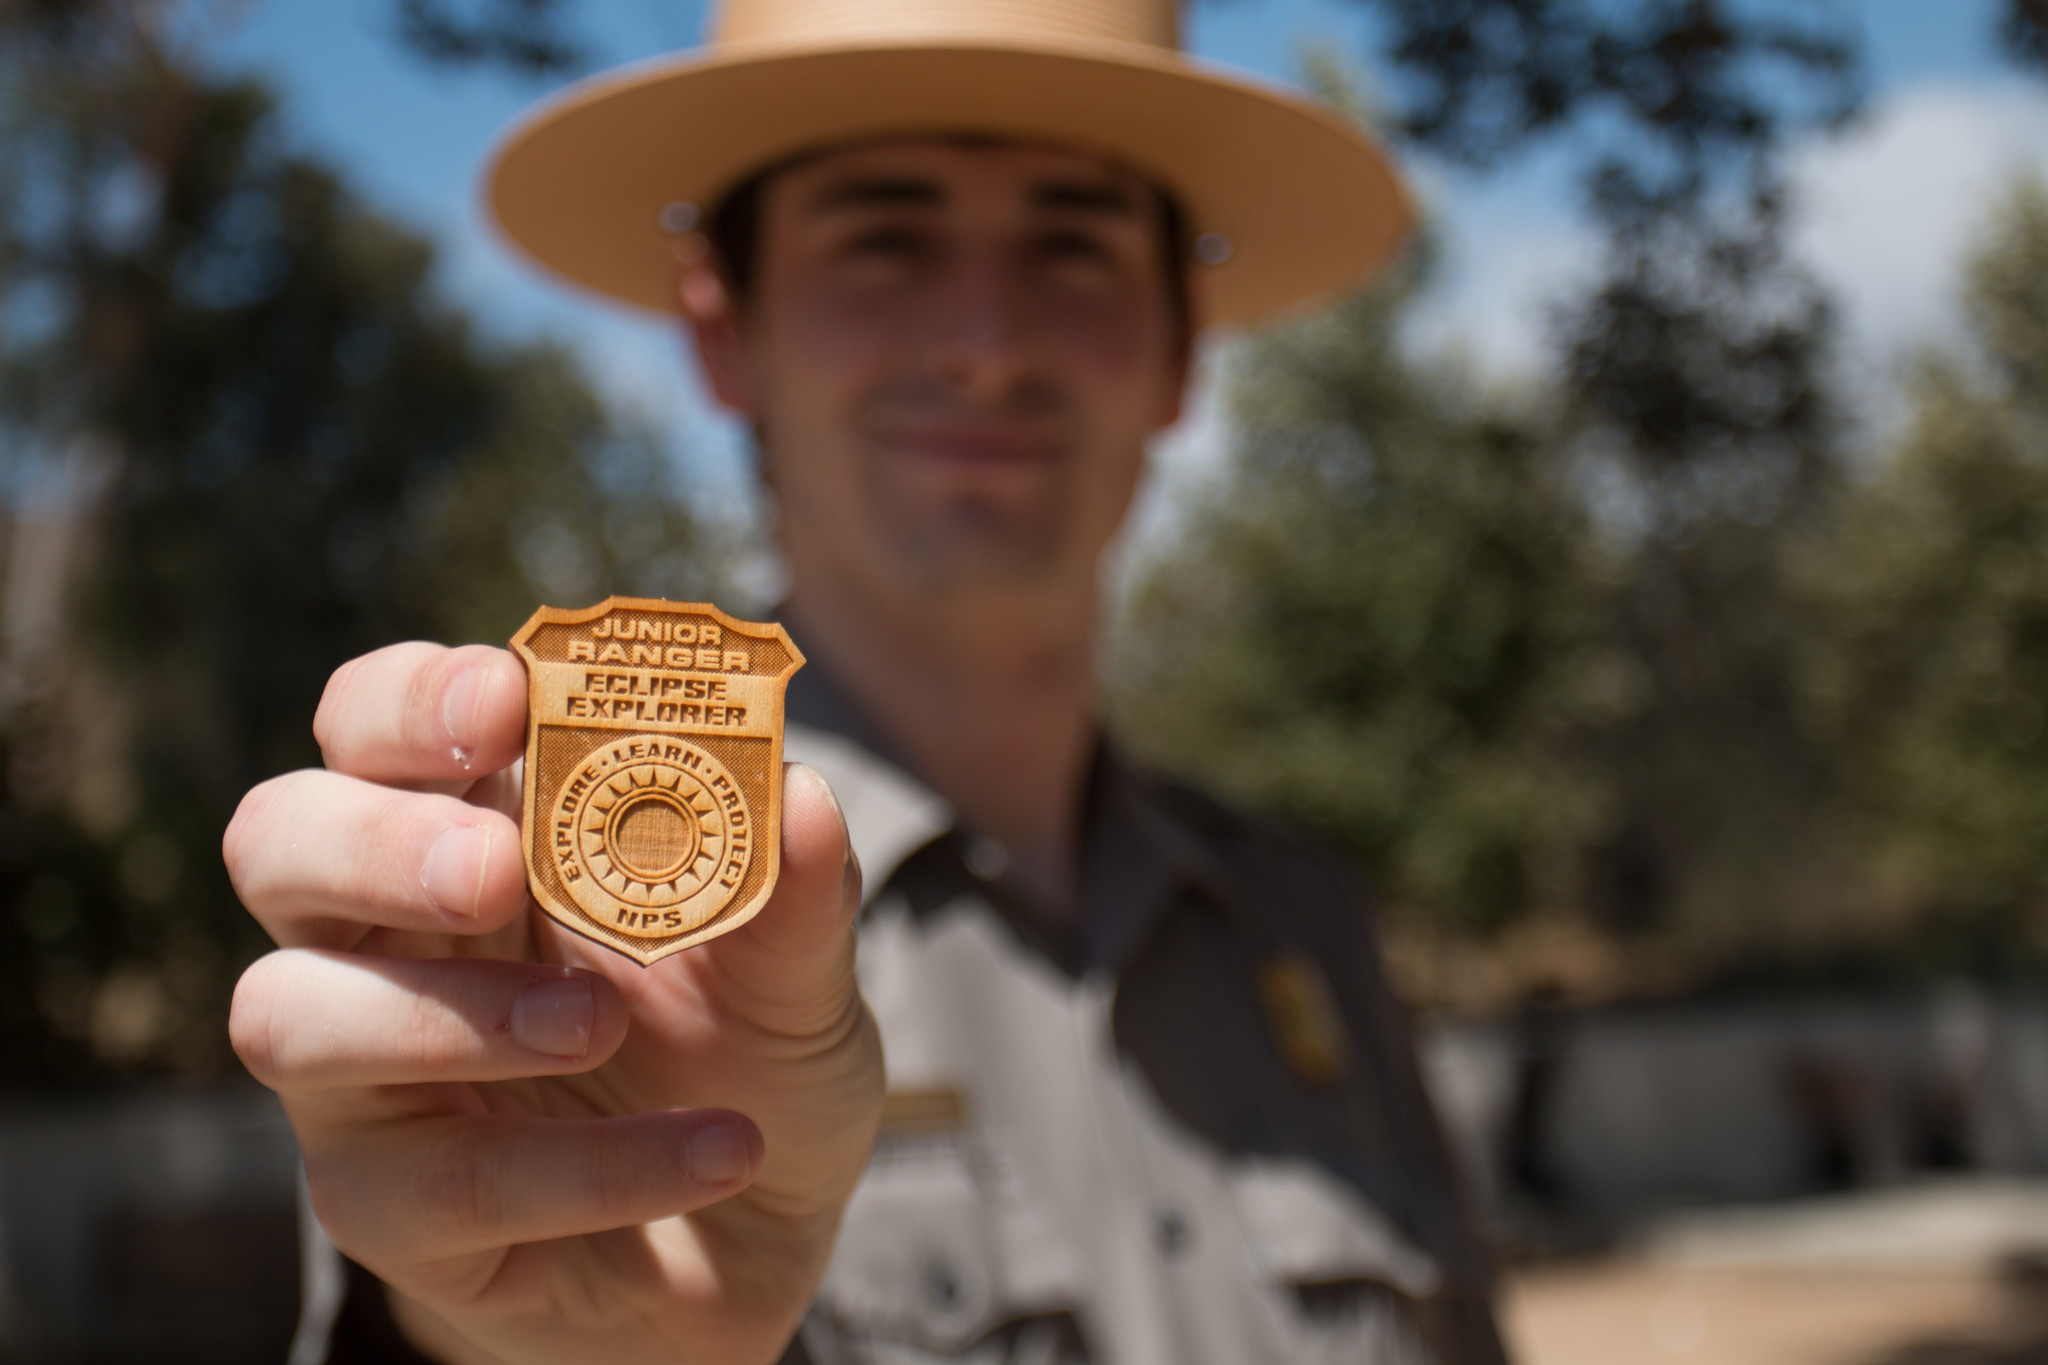 Young eclipse watchers will receive special Junior Ranger badges on Aug. 21.